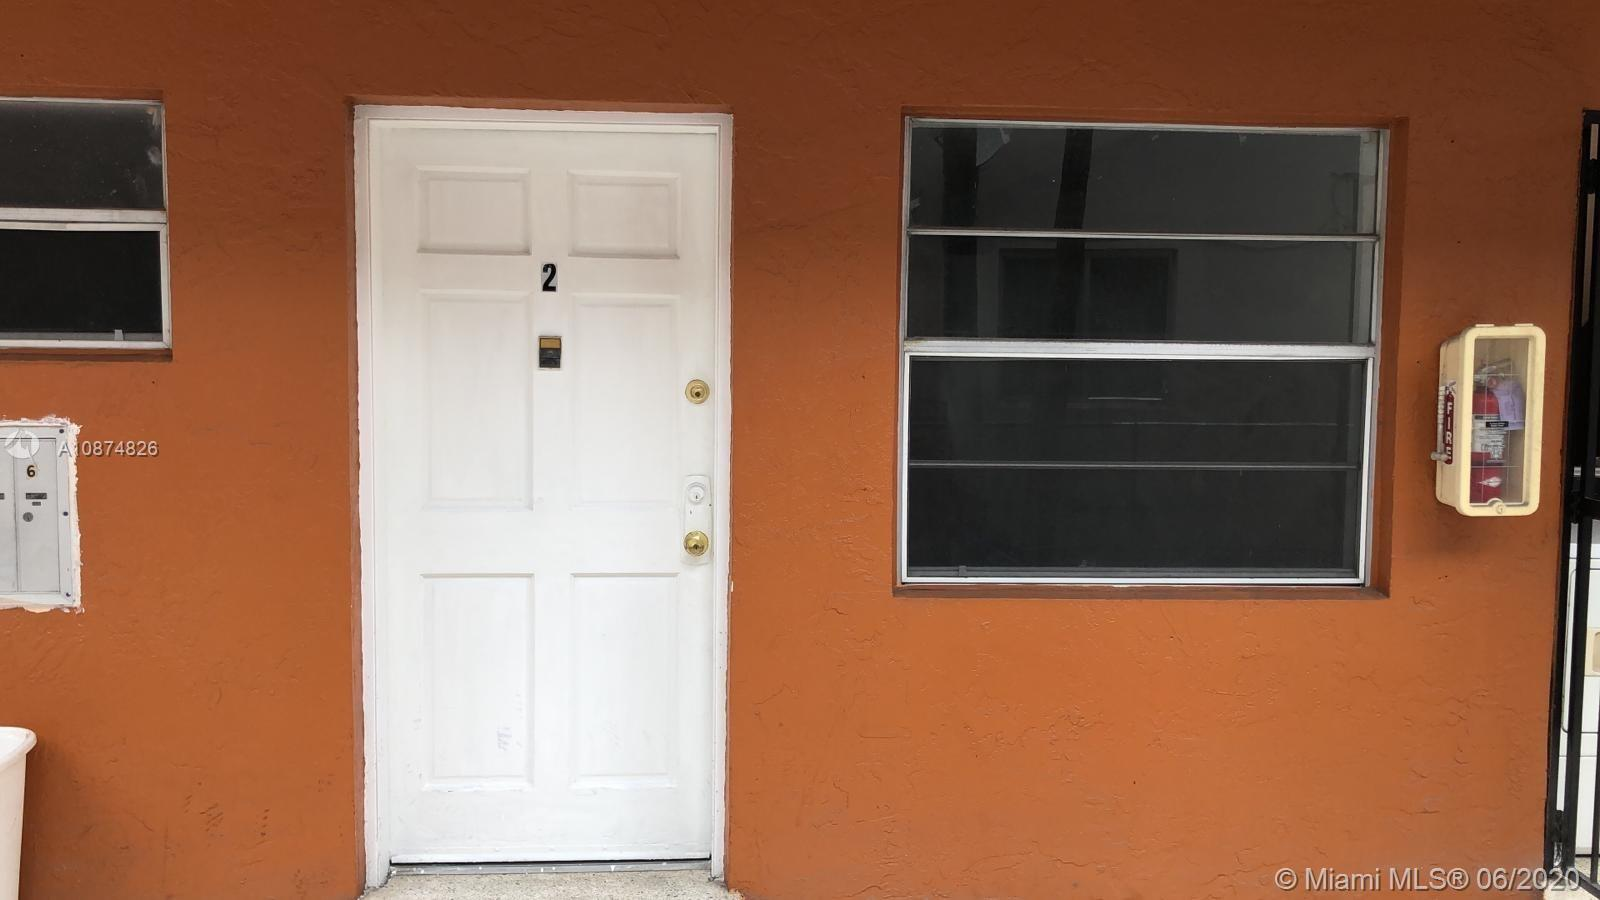 1029 NW 5th St #2 For Sale A10874826, FL